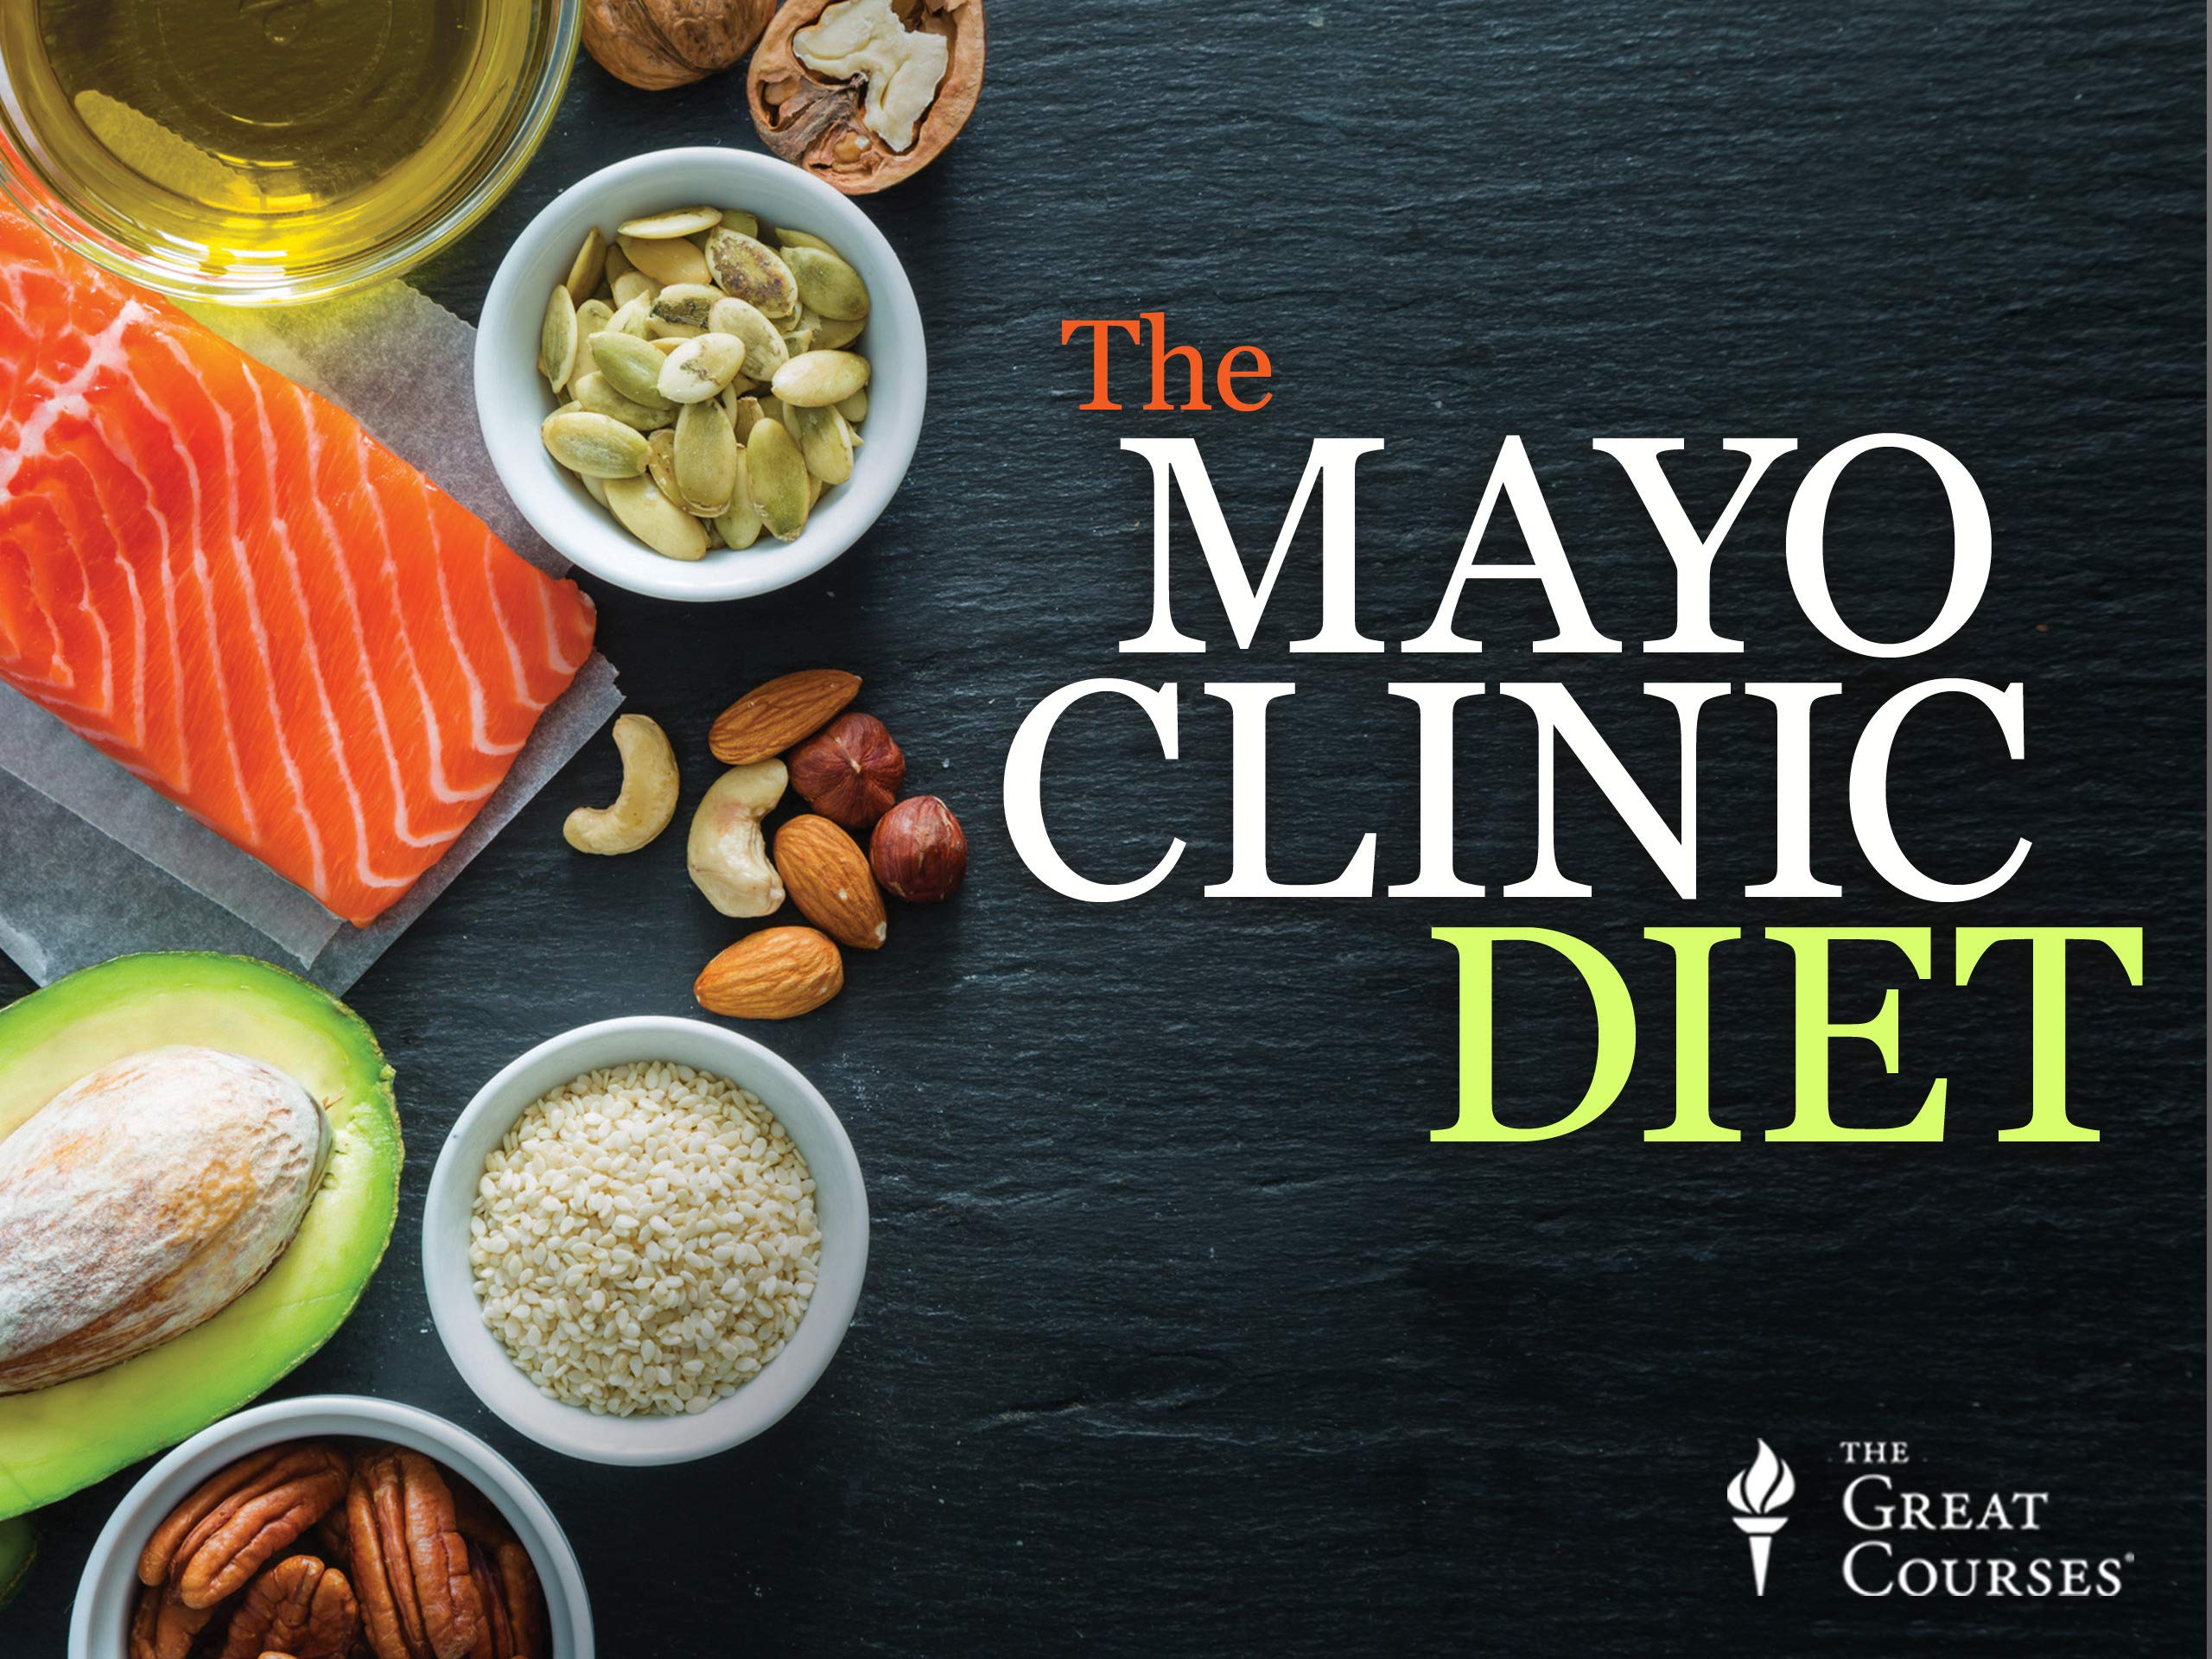 Mayo clinic healthy food recipes Watch The Mayo Clinic Diet The Healthy Approach To Weight Loss Prime Video